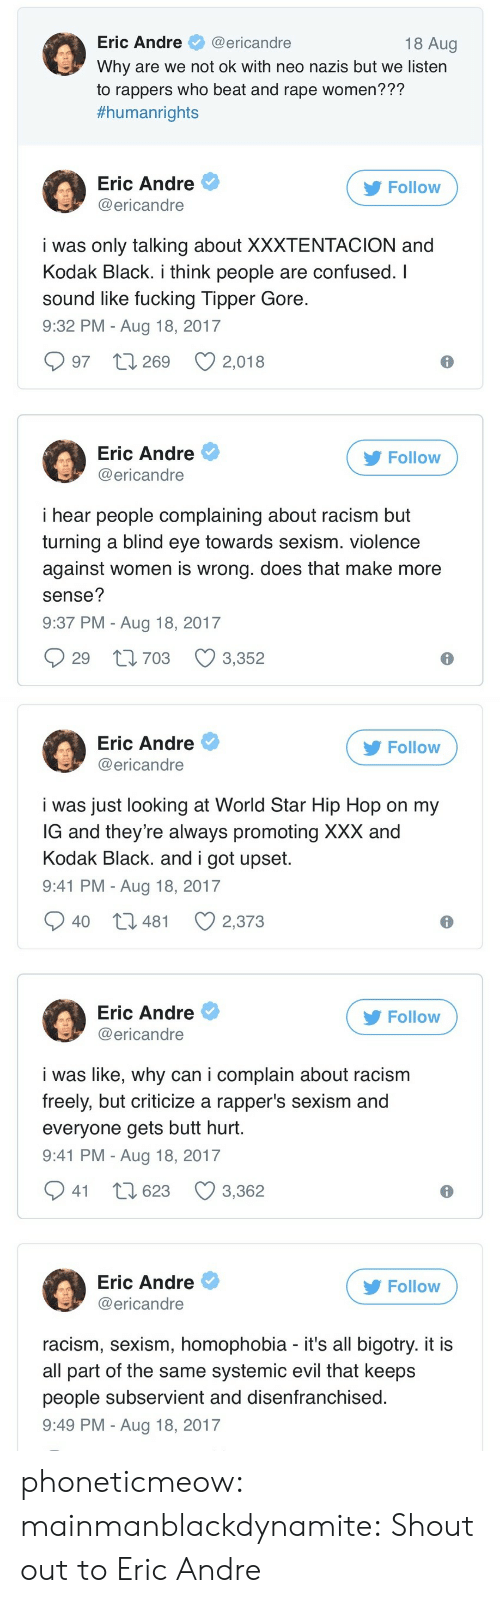 Xxxtentacion: Eric Andre@ericandre  Why are we not ok with neo nazis but we listern  to rappers who beat and rape women???  #humanrights  18 Aug  Eric Andre  @ericandre  Follow  i was only talking about XXXTENTACION and  Kodak Black. i think people are confused. I  sound like fucking Tipper Gore  9:32 PM - Aug 18, 2017  997 t 269 2,018  Eric Andre  @ericandre  Follow  i hear people complaining about racism but  turning a blind eye towards sexism. violence  against women is wrong. does that make more  sense?  9:37 PM - Aug 18, 2017  29 t1703 3,352   Eric Andre  @ericandre  Follow  i was just looking at World Star Hip Hop on my  G and they're always promoting XXX and  Kodak Black. and i got upset  9:41 PM - Aug 18, 2017  40 t3 481  2,373  Eric Andre  @ericandre  Follow  i was like, why can i complain about racism  freely, but criticize a rapper's sexism and  everyone gets butt hurt  9:41 PM - Aug 18, 2017  941 t 623 3,362  Eric Andre  @ericandre  Follow  racism, sexism, homophobia - it's all bigotry. it i:s  all part of the same systemic evil that keeps  people subservient and disenfranchised  9:49 PM - Aug 18, 2017 phoneticmeow:  mainmanblackdynamite: Shout out to Eric Andre